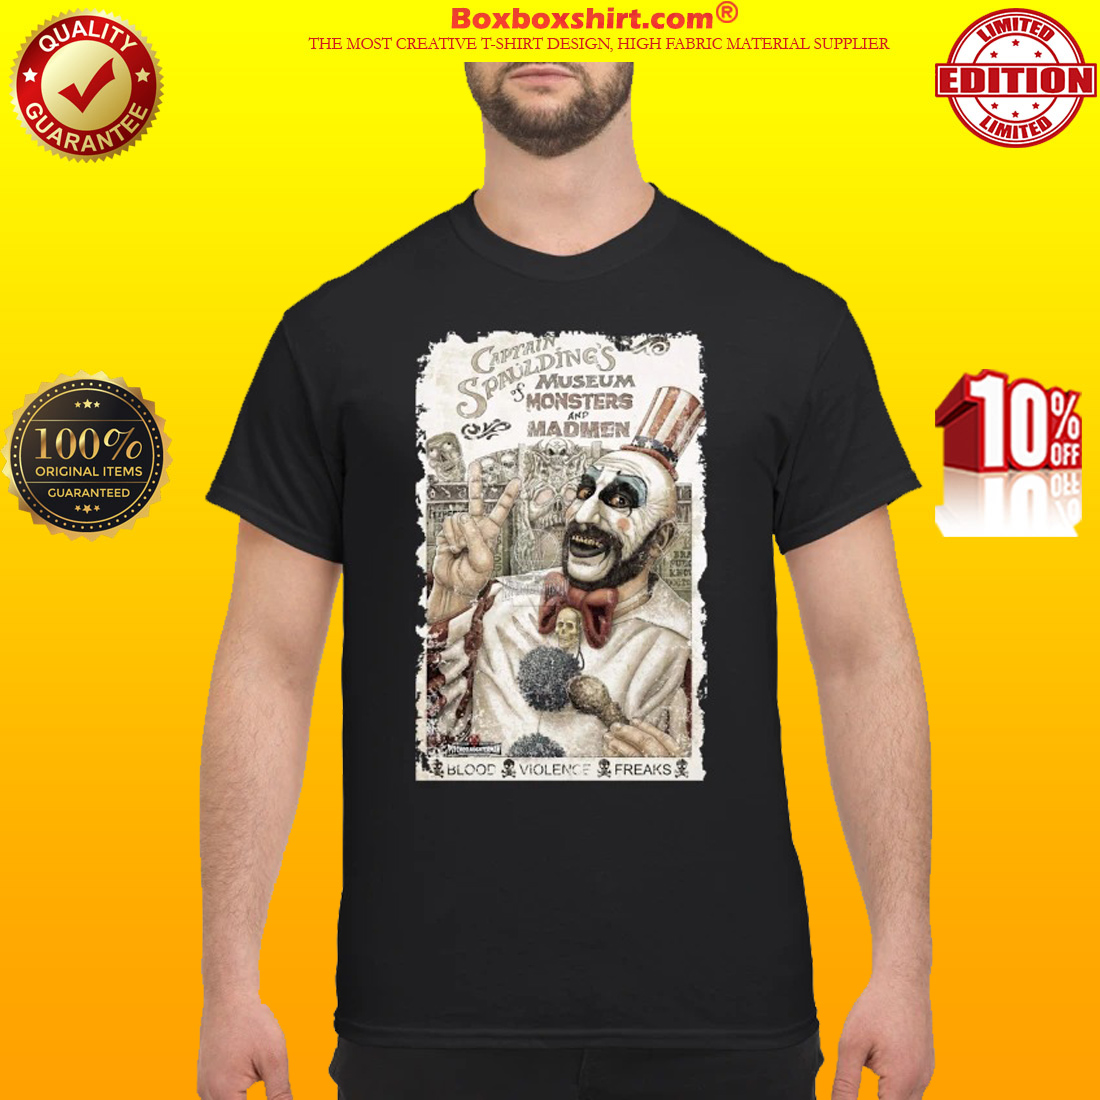 Captain Spaulding museum of monsters and madmen shirt